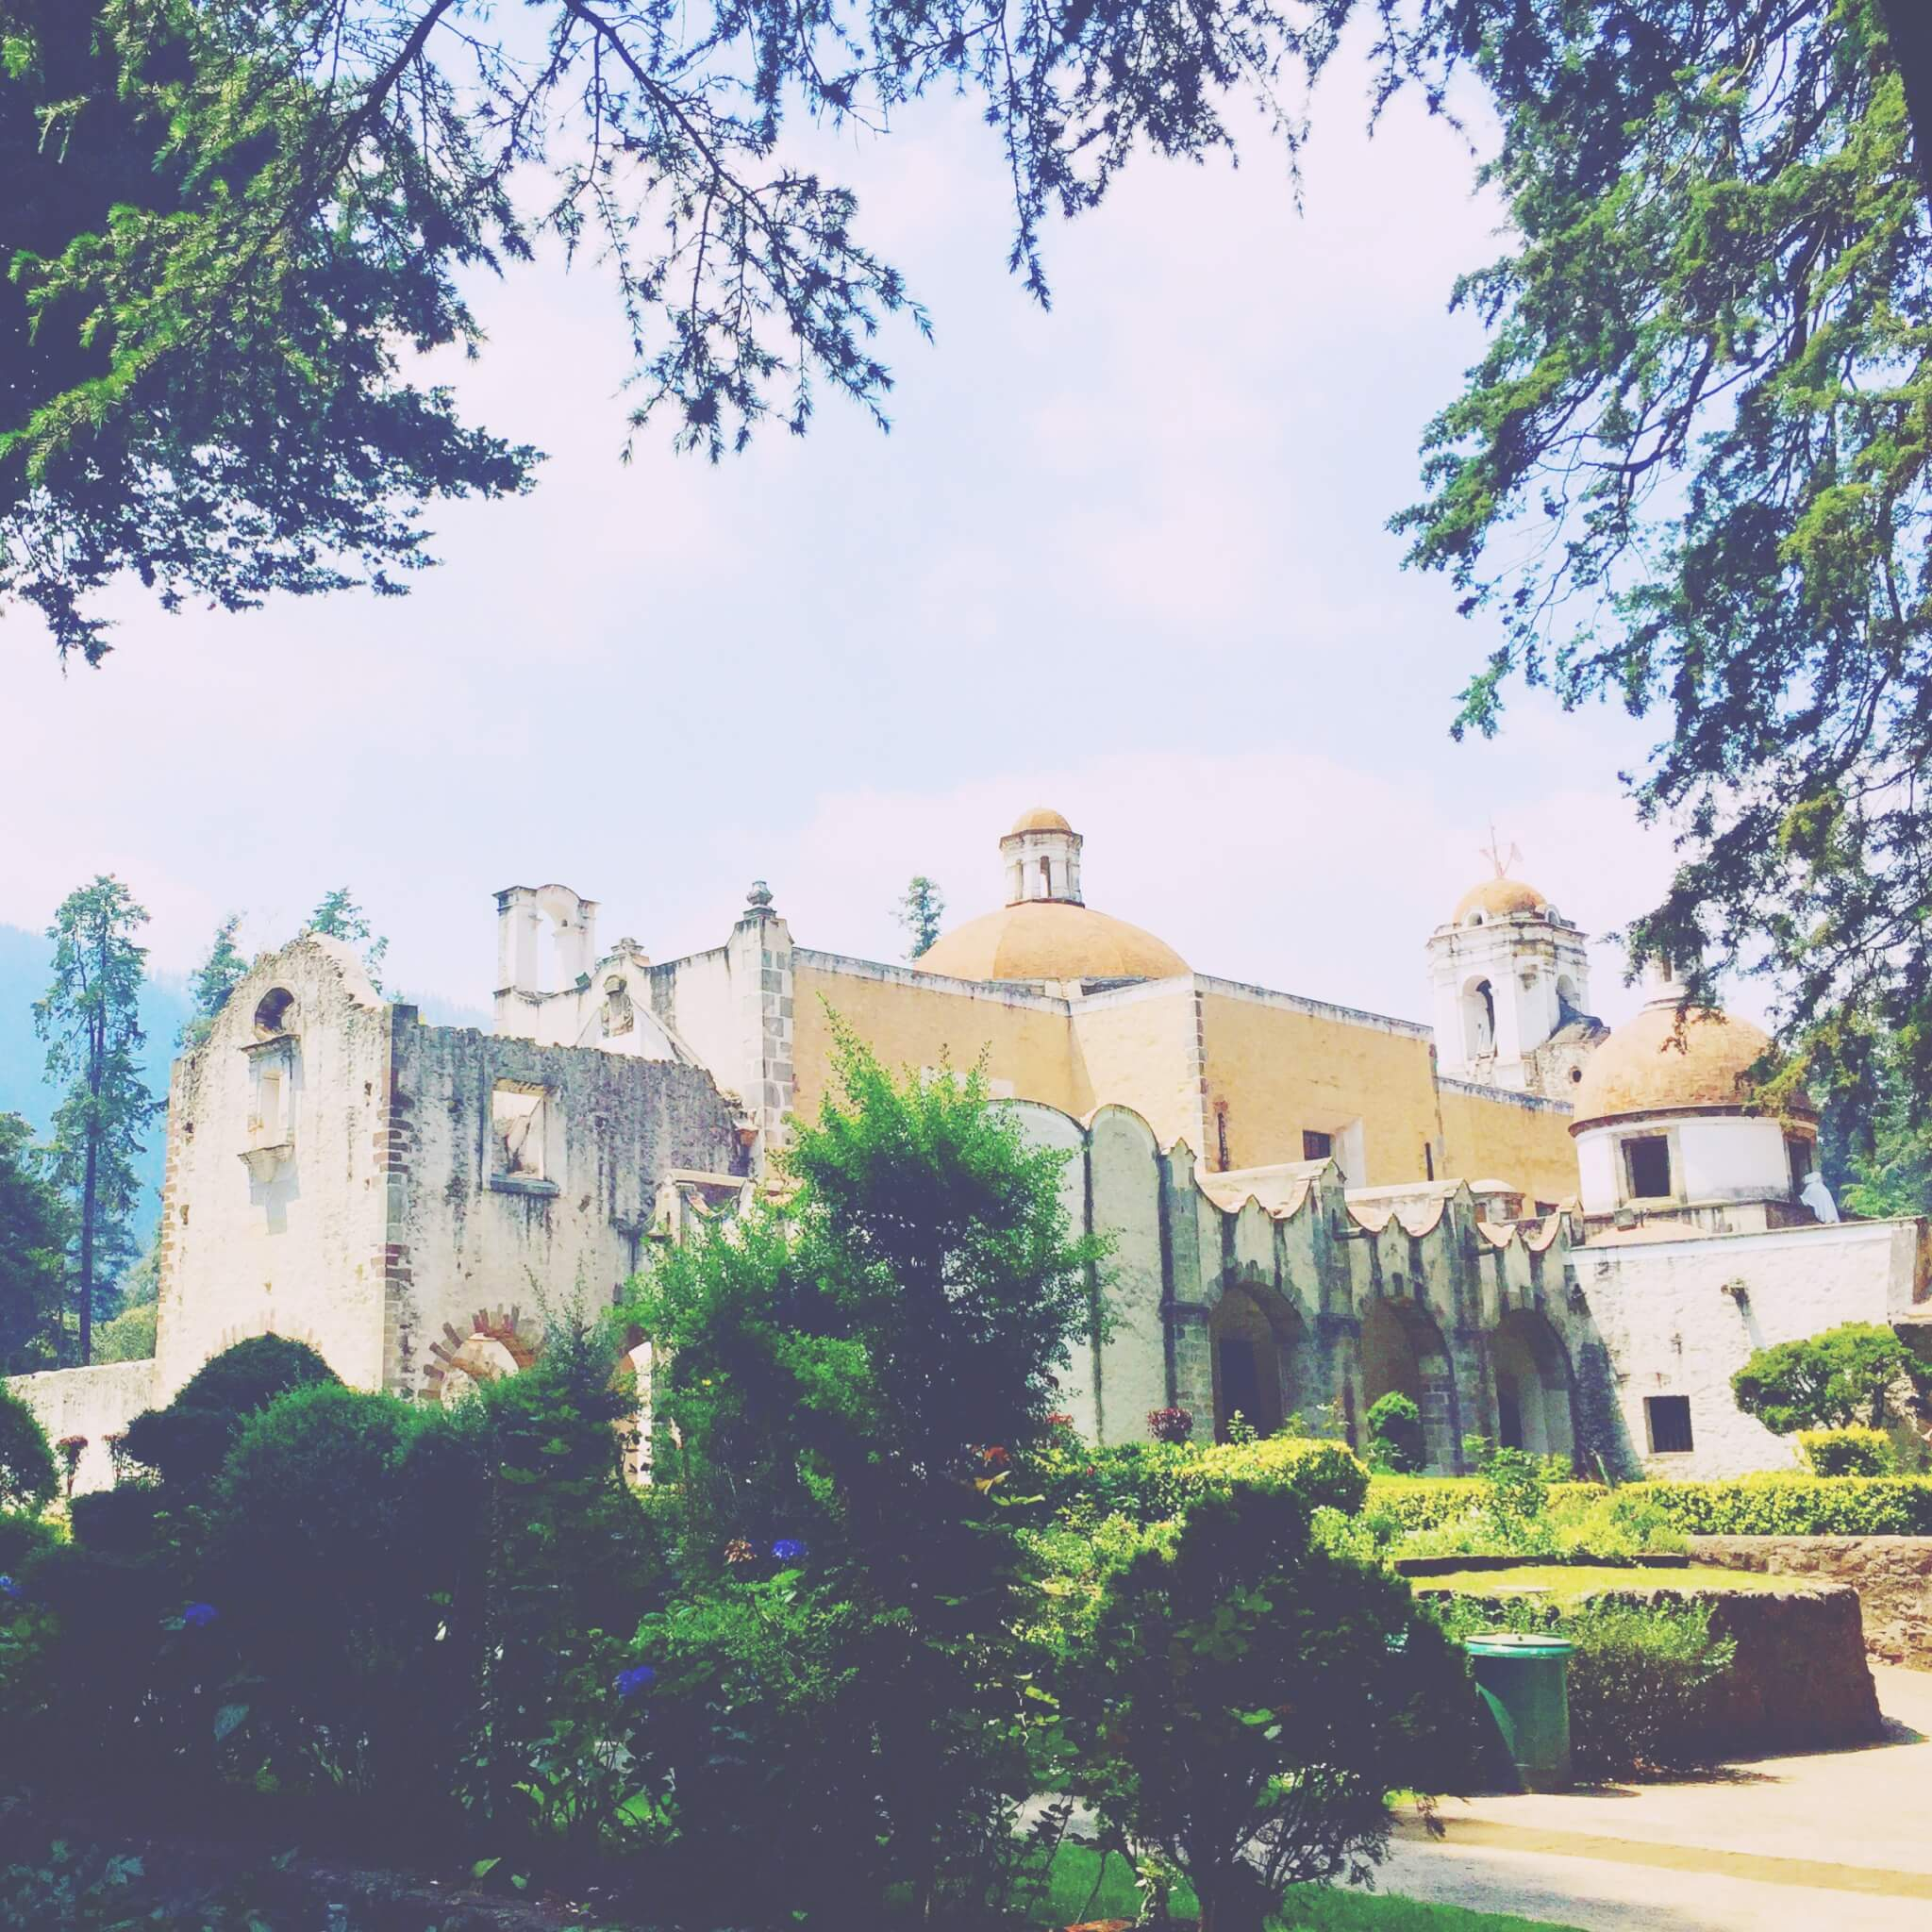 Ex Convento del Desierto de los Leones: One of My Favorite Places in Mexico City